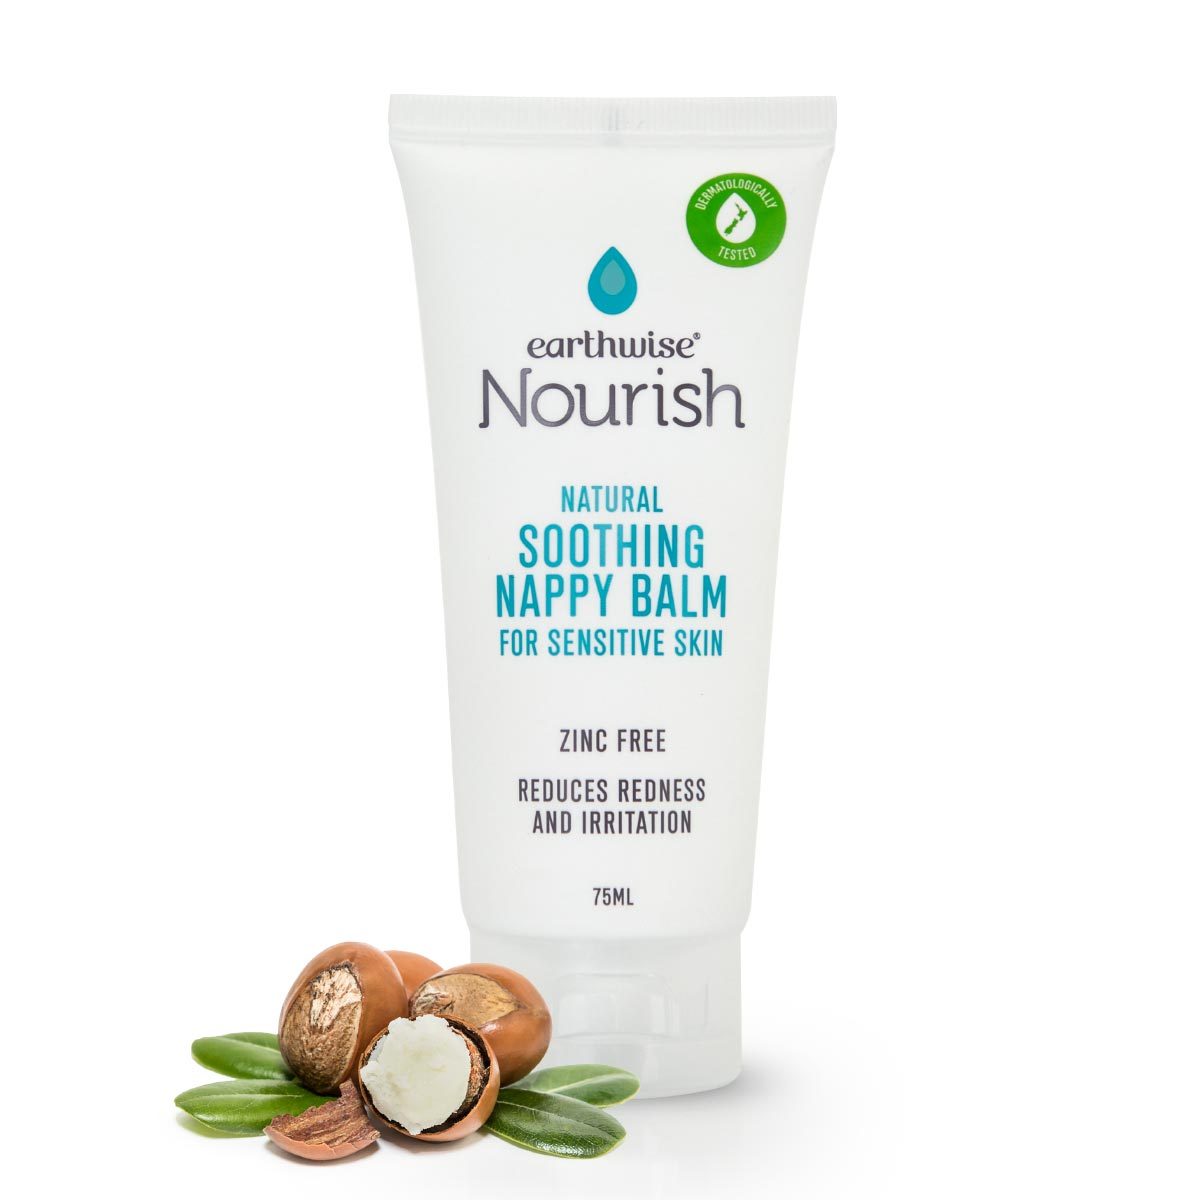 Earthwise Nourish Natural Soothing Nappy Balm